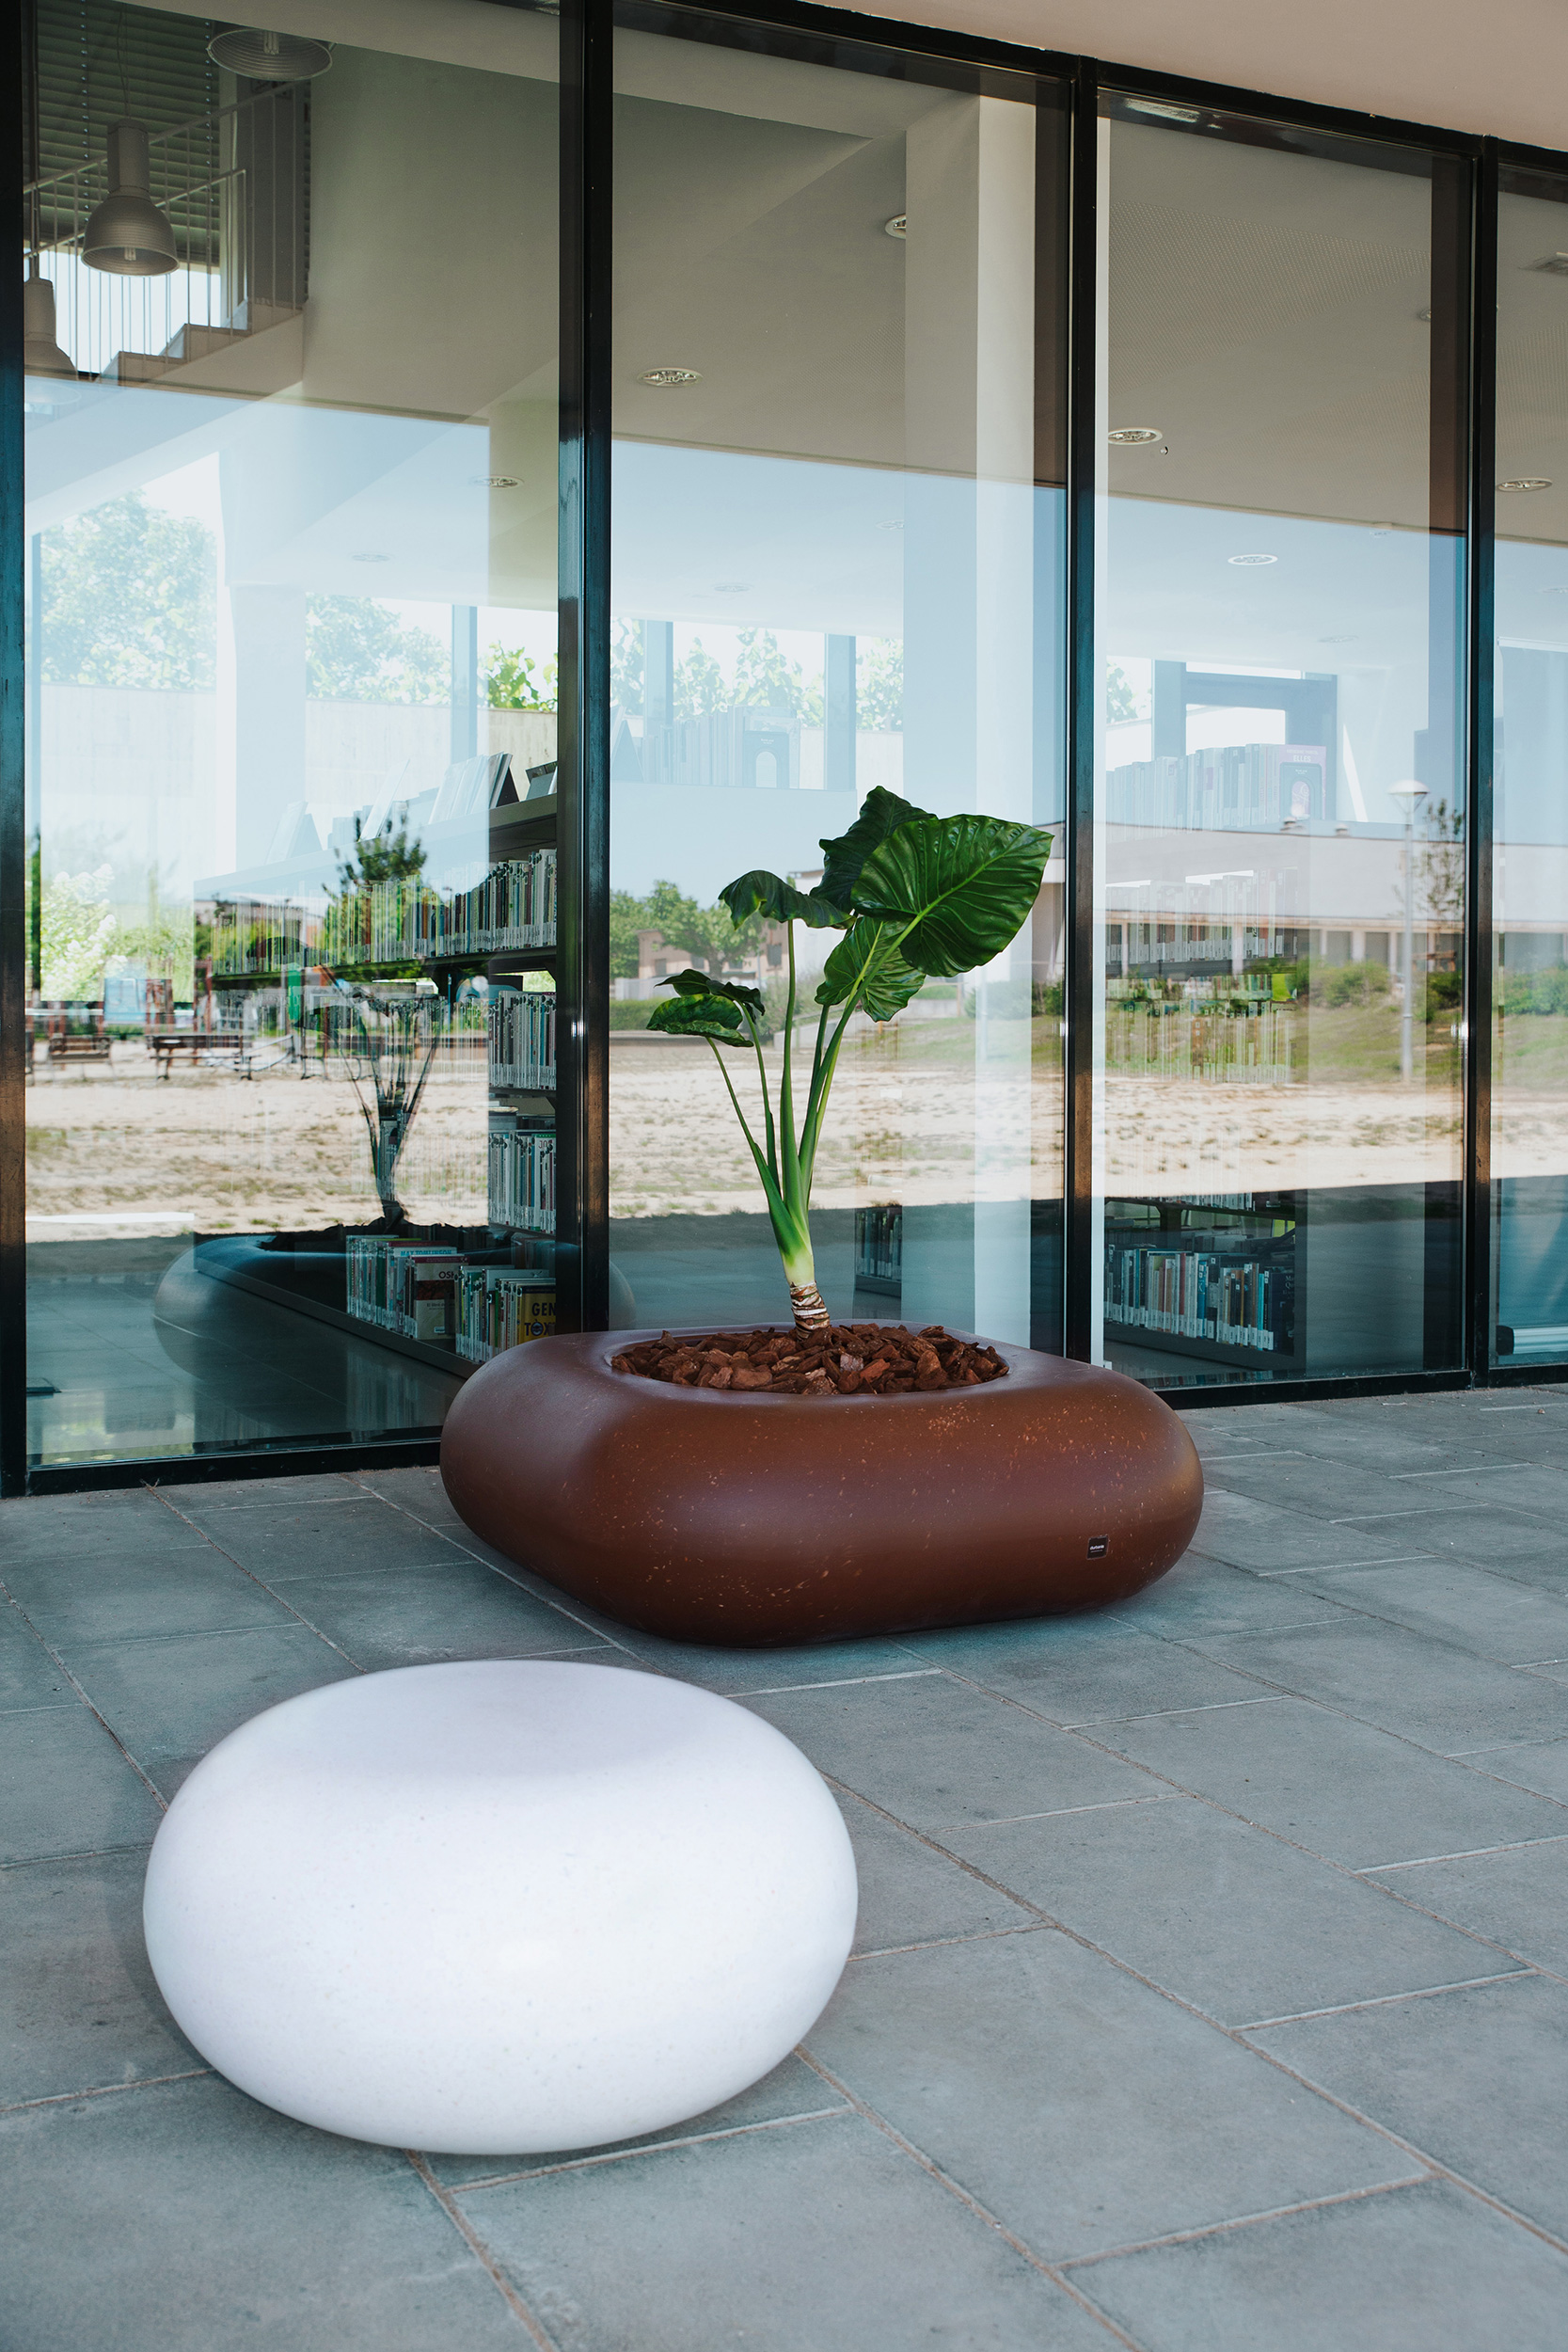 Recycled plastic planter, made by Durbanis, in front of the Porqueres library, Catalunya, Spain